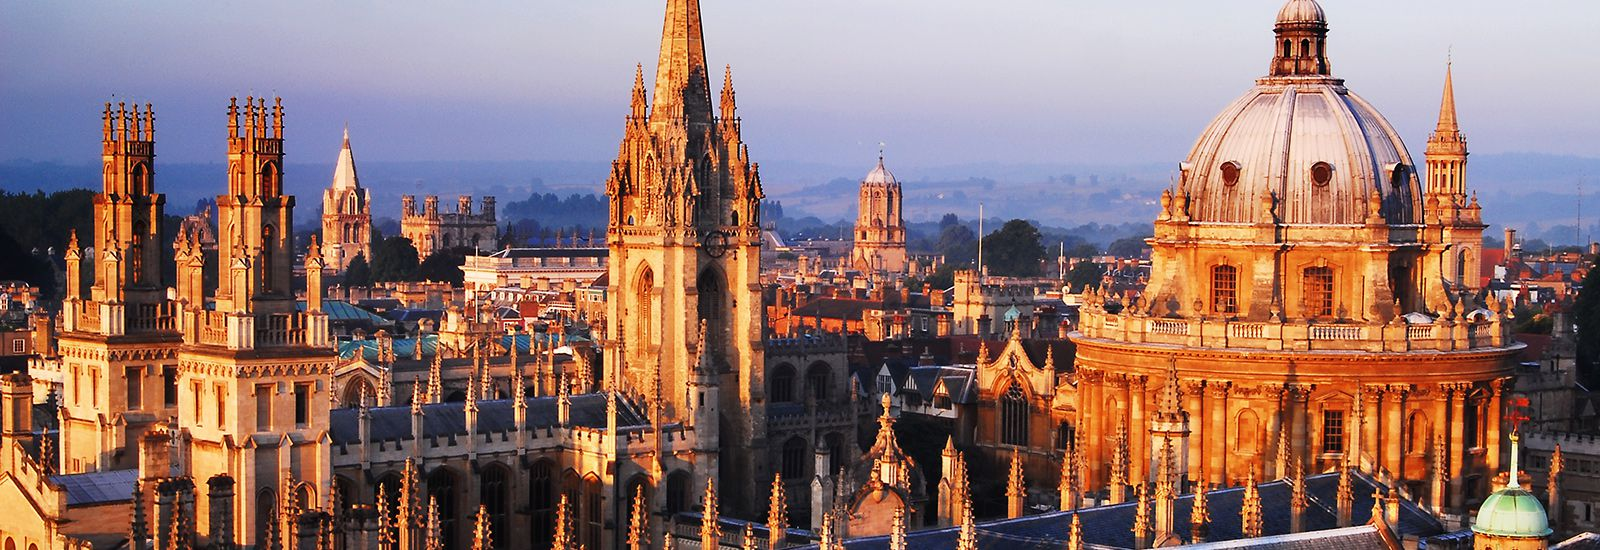 Oxford - one of the best places to visit in the UK